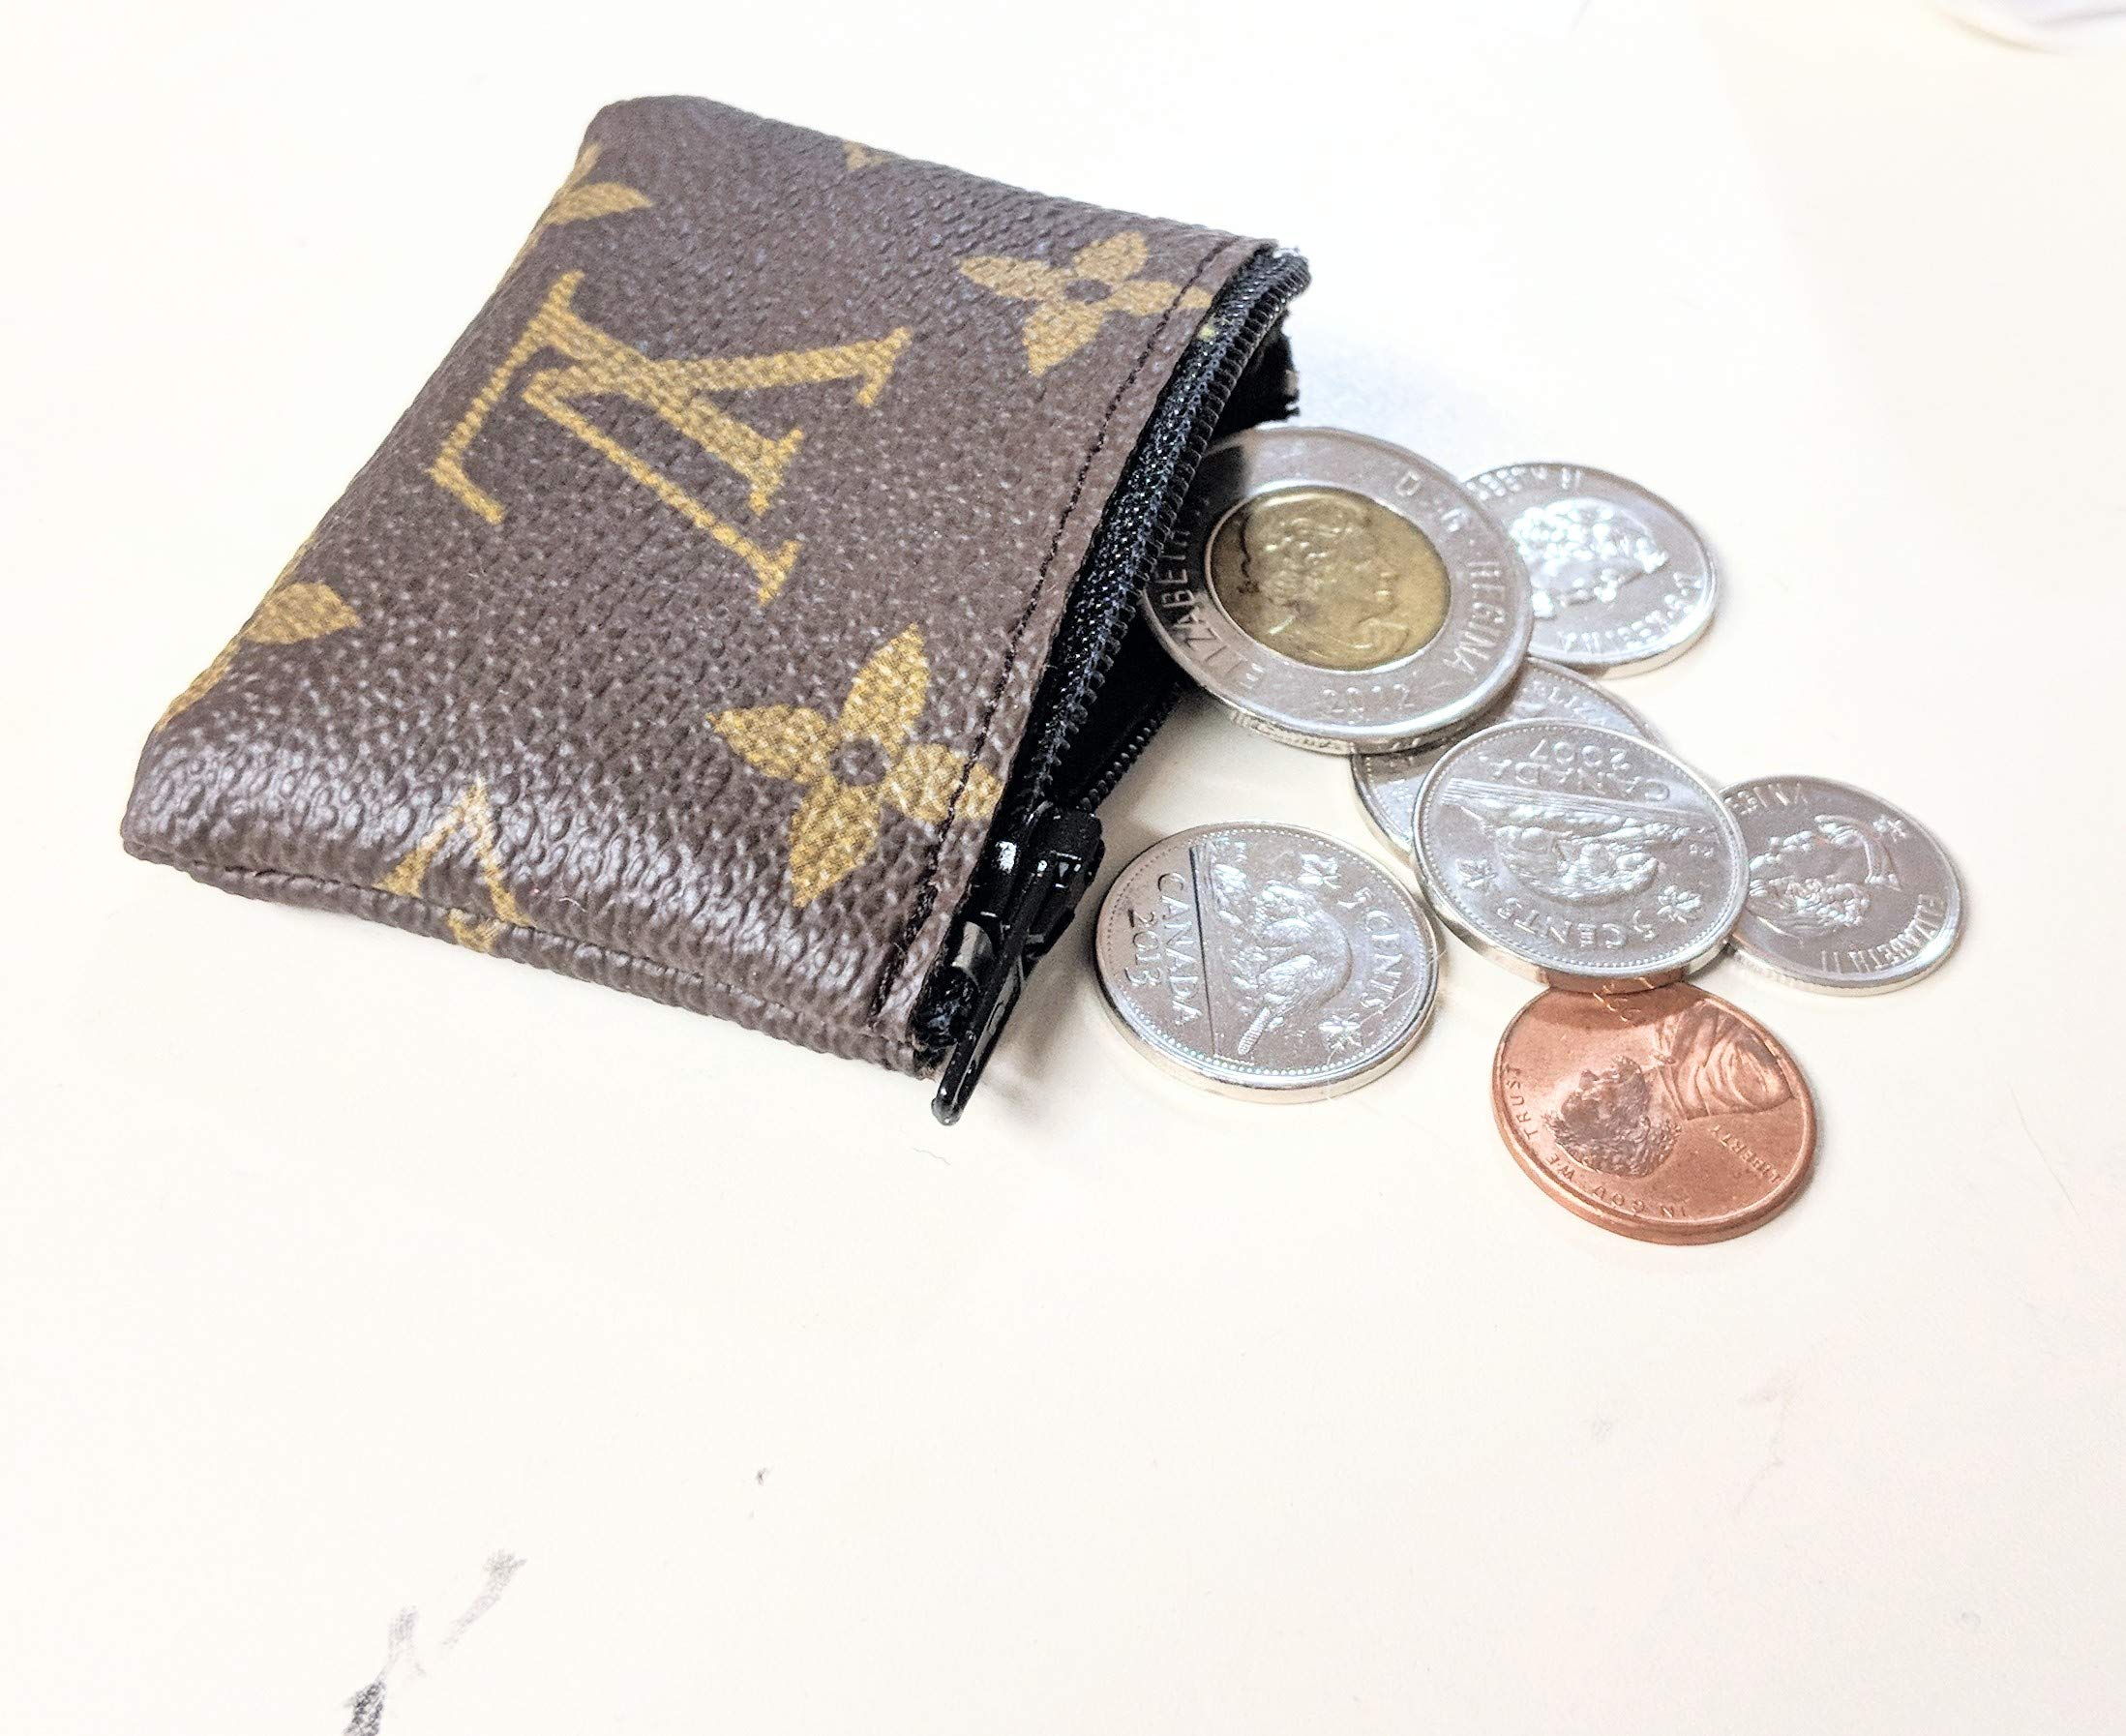 Handcrafted upcycled and repurposed into mini coin purse from old authentic LV bag canvas-please read item description before you make your purchase